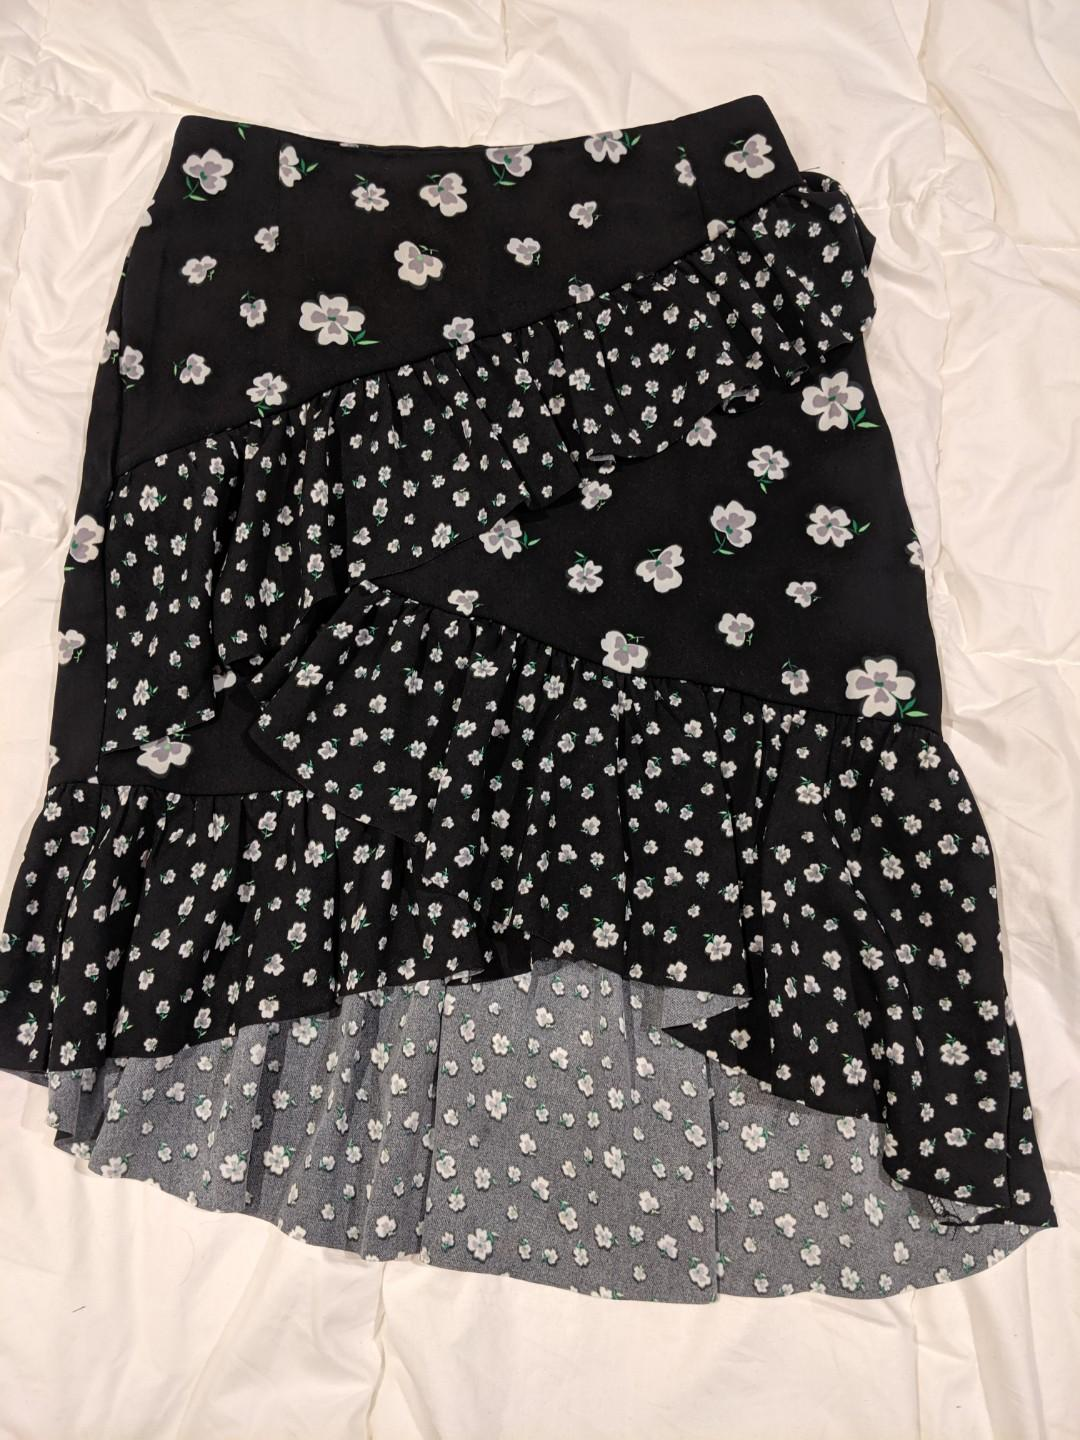 H&M floral skirt with ruffle frills, black and white mini skirt. Wrap style